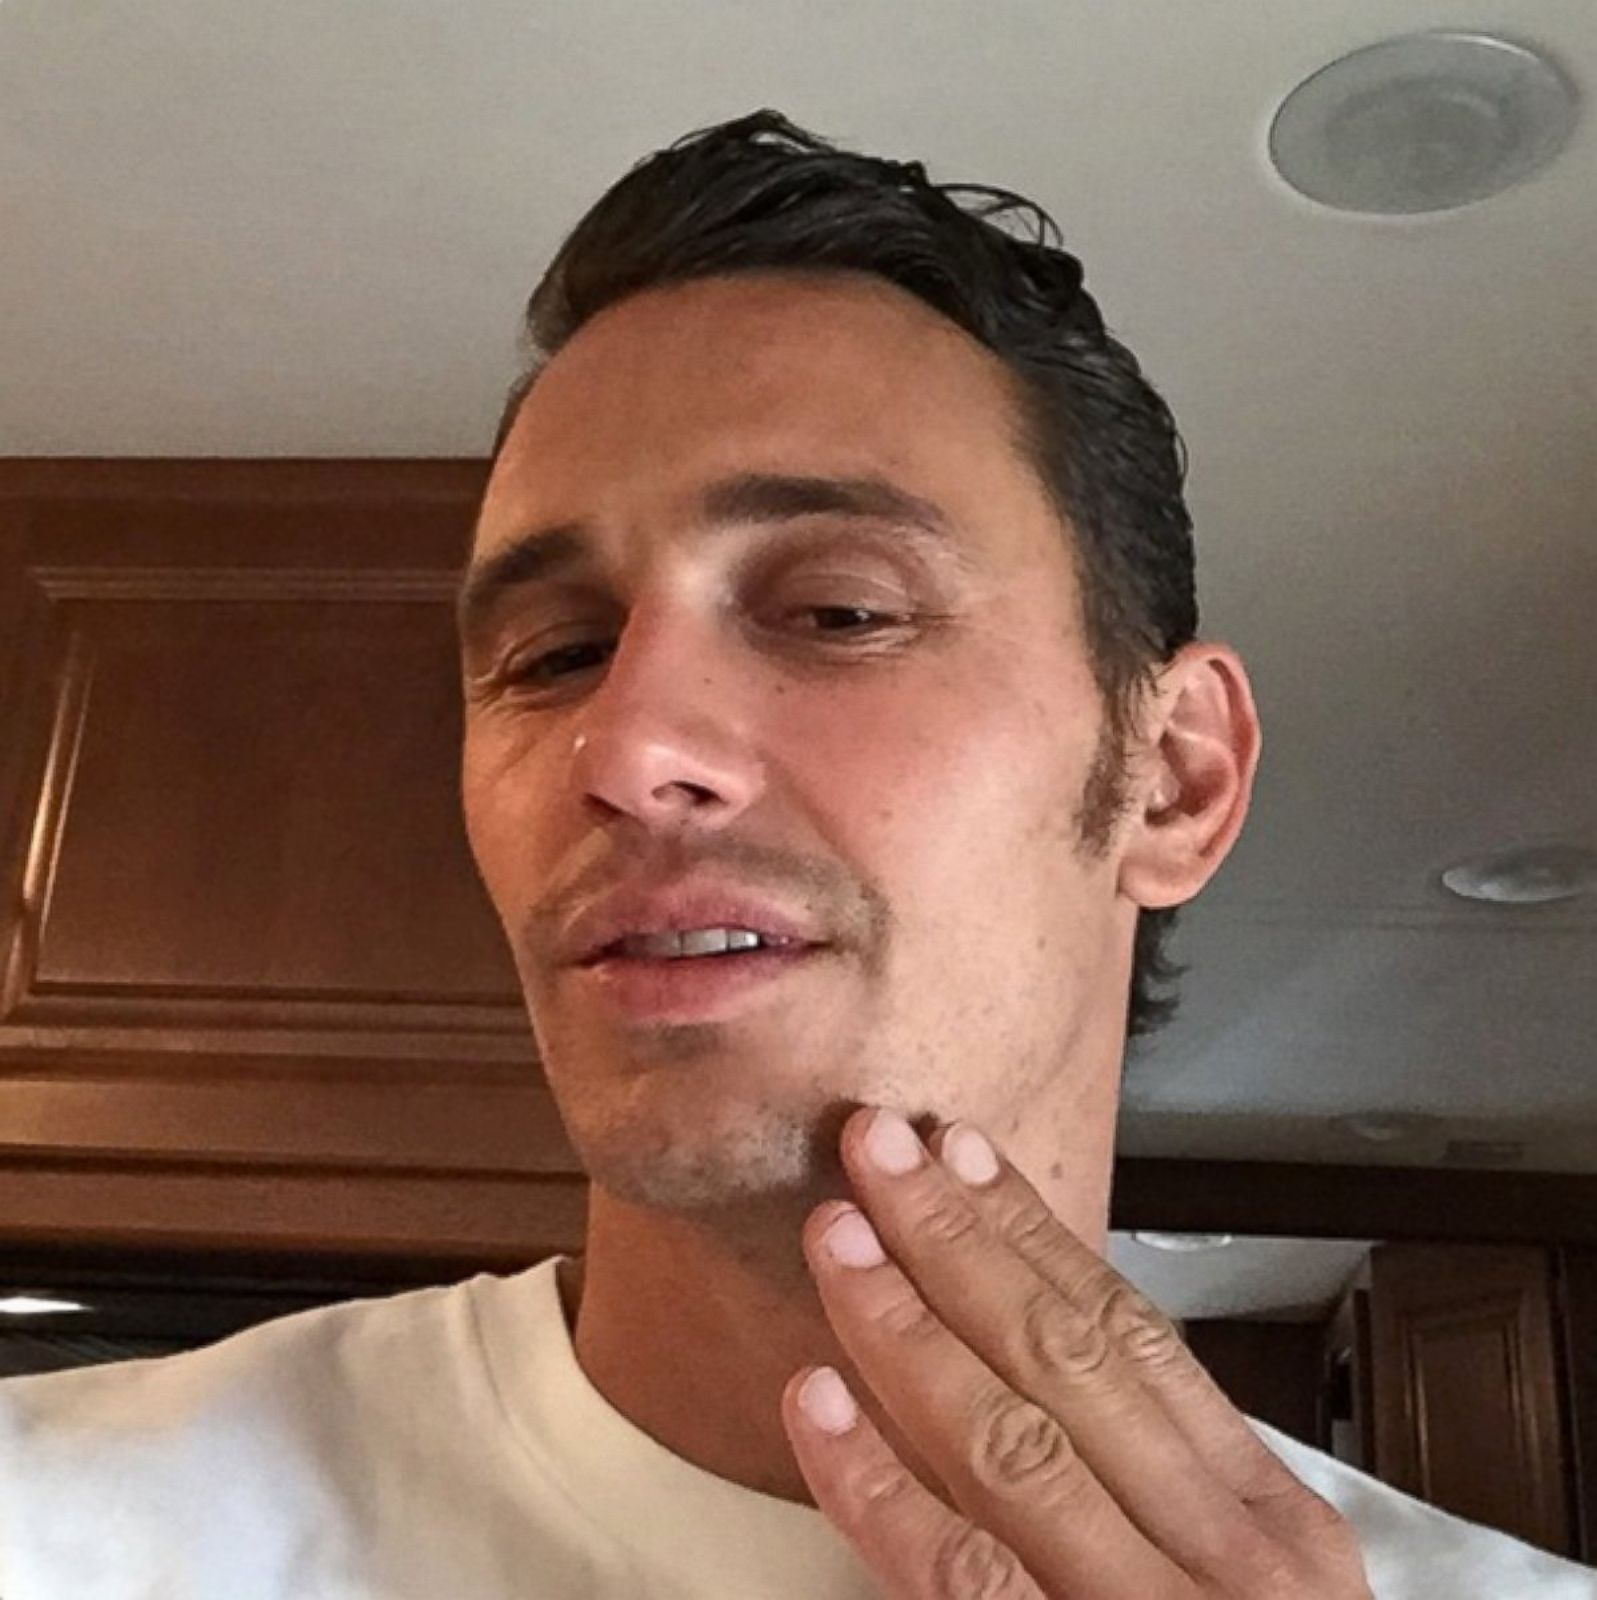 See James Franco's Newest Look Picture | Celeb Self Portraits - ABC ...